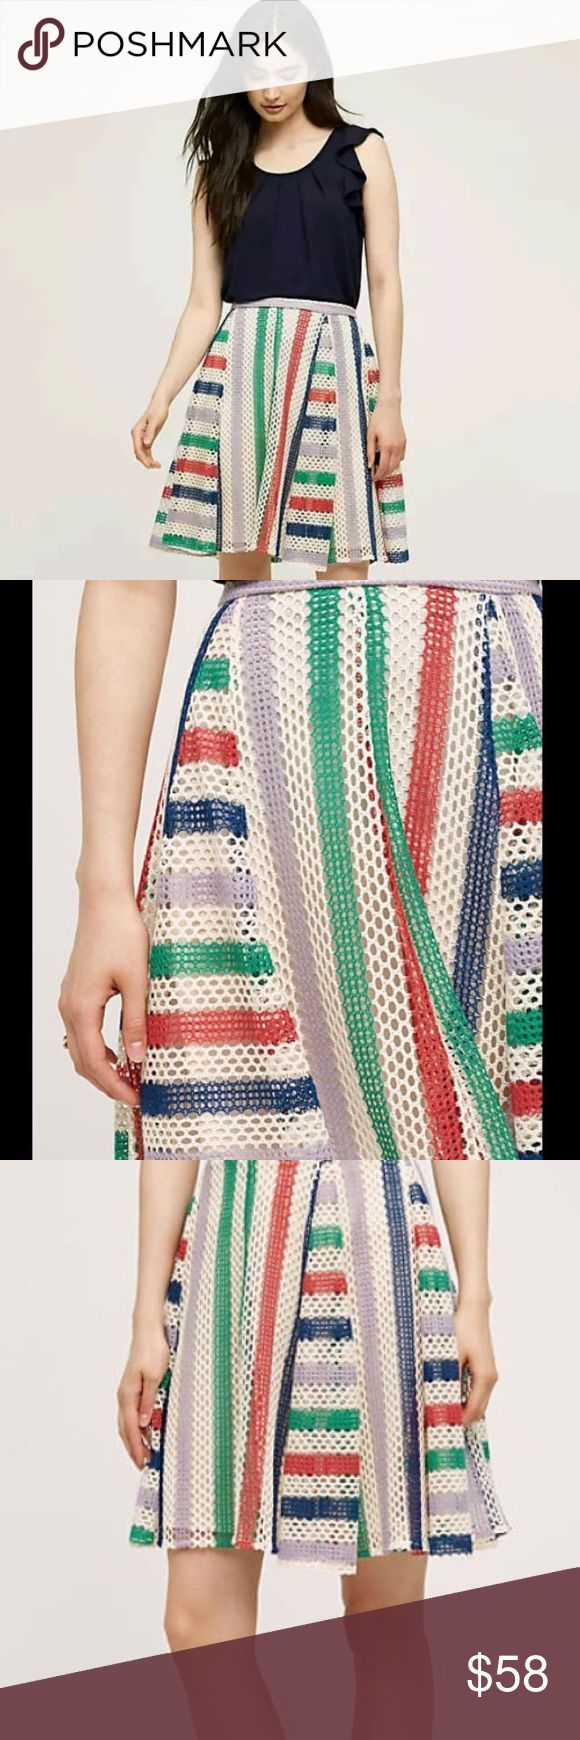 NWT Anthropologie Eva Franco Crochet French Skirt Anthropologie Eva Franco Crochet French Quarter Skirt --- Size 0 --- NWT --- cotton polyester blend --- lined in polyester --- full silhouette --- back zipper --- dry clean --- made in USA  Anthropologie Skirts